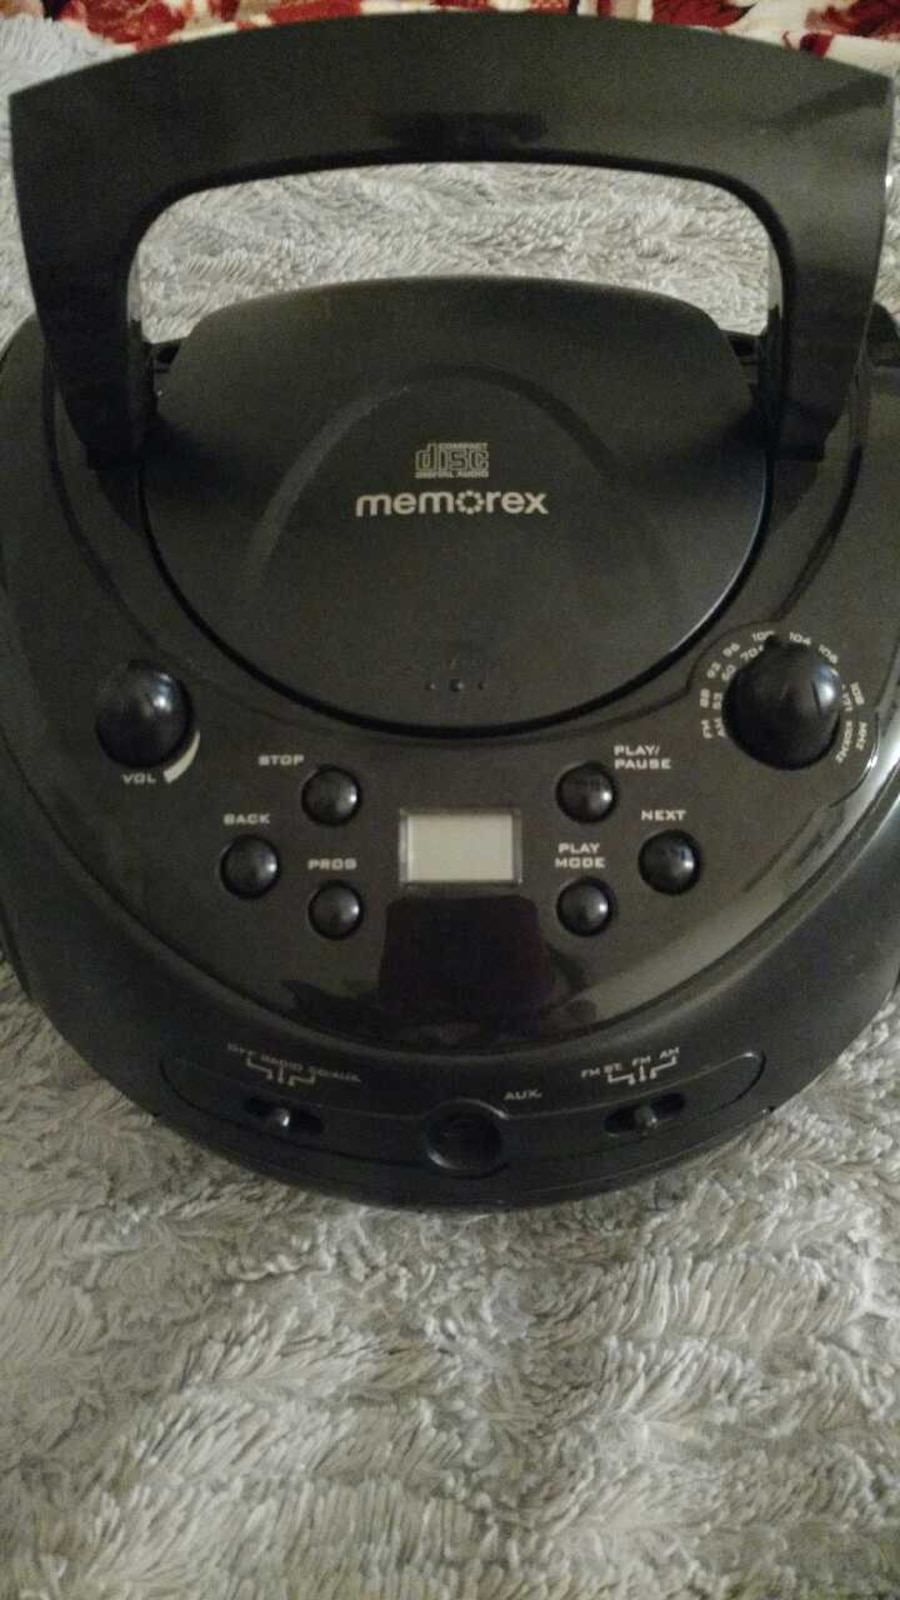 943561 6 further Memorex Retro 1950s Style Car Radio Design Am FM Stereo Radio CD Player MTT3200 together with 182376582223 likewise 121009916997 likewise Auna Retro Kofferradio Vintage Look Ukw Usb Mp3 Uhr Cd Player Tragbar Rcd 70 518125608. on memorex cd player